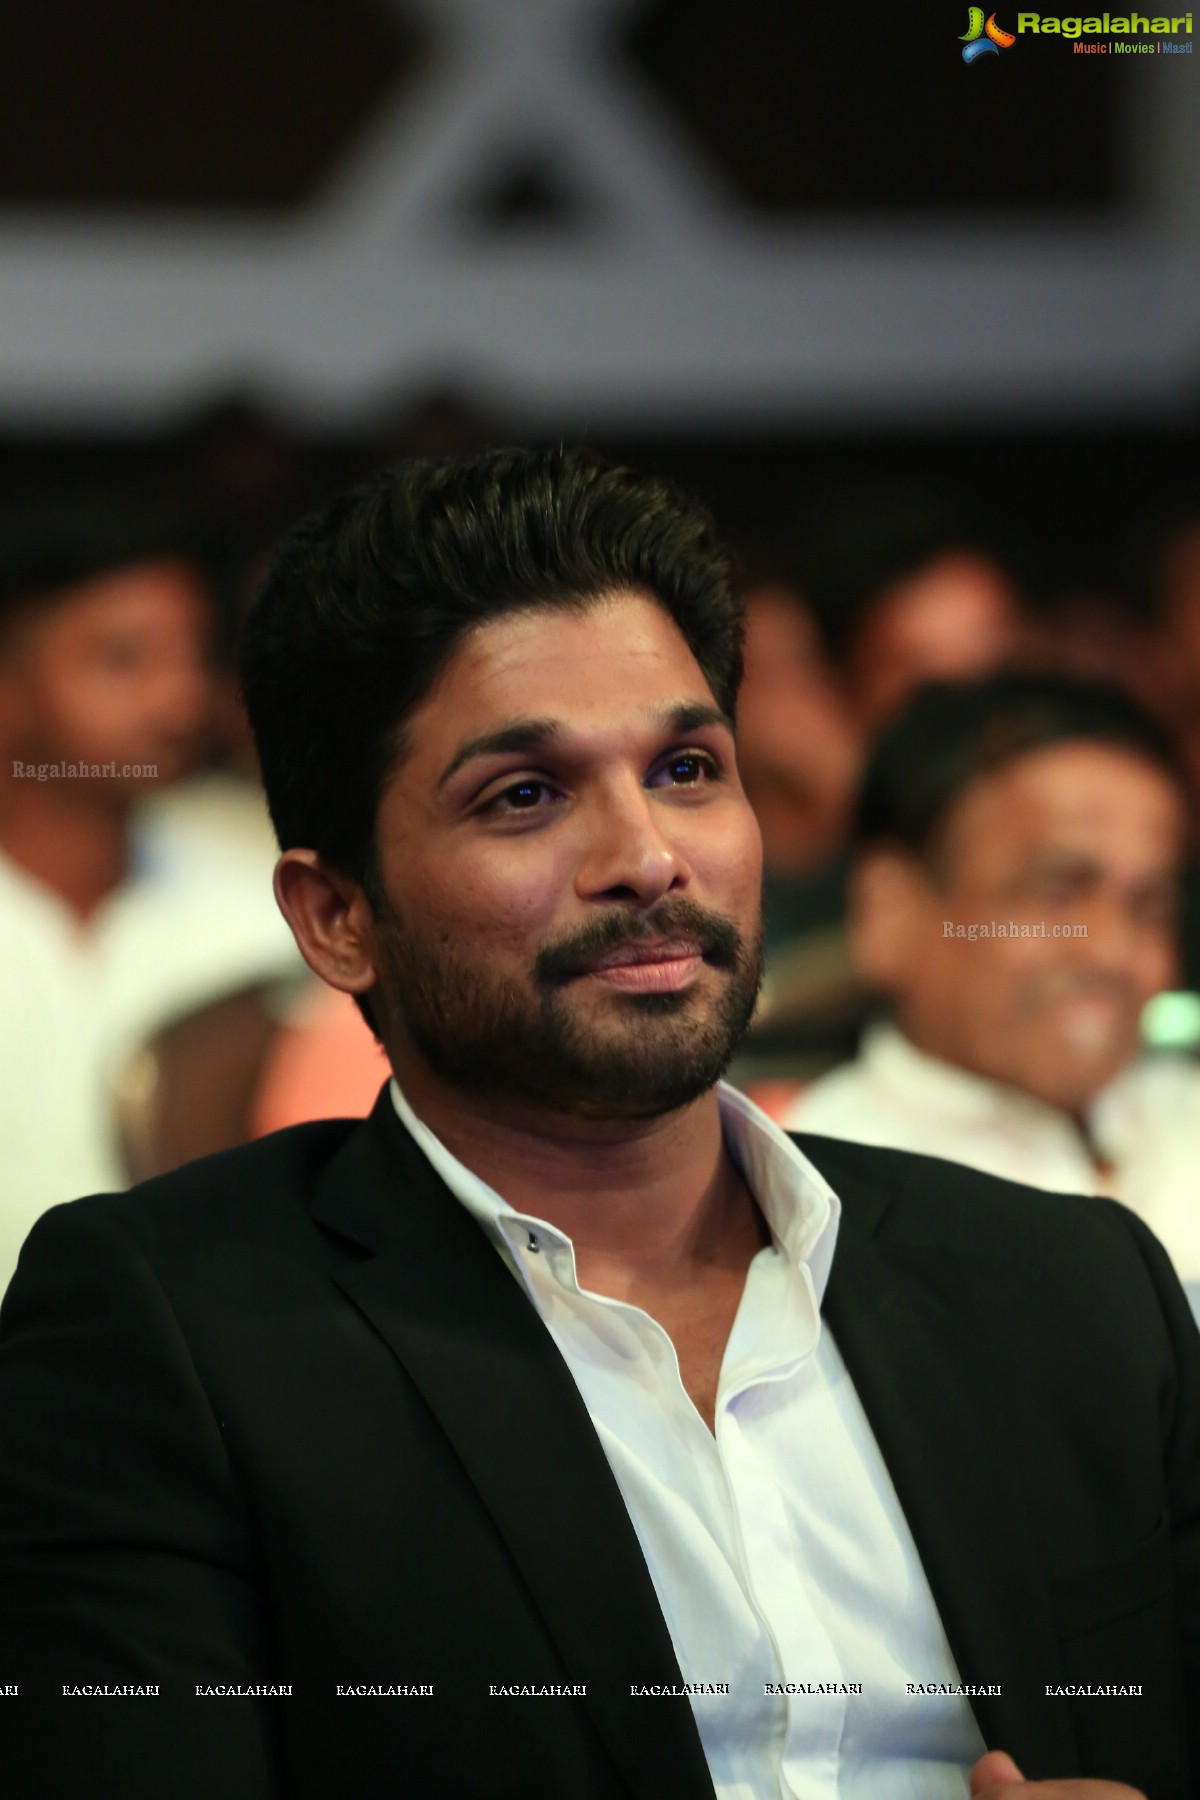 Allu Arjun Dj Movie Wallpaper